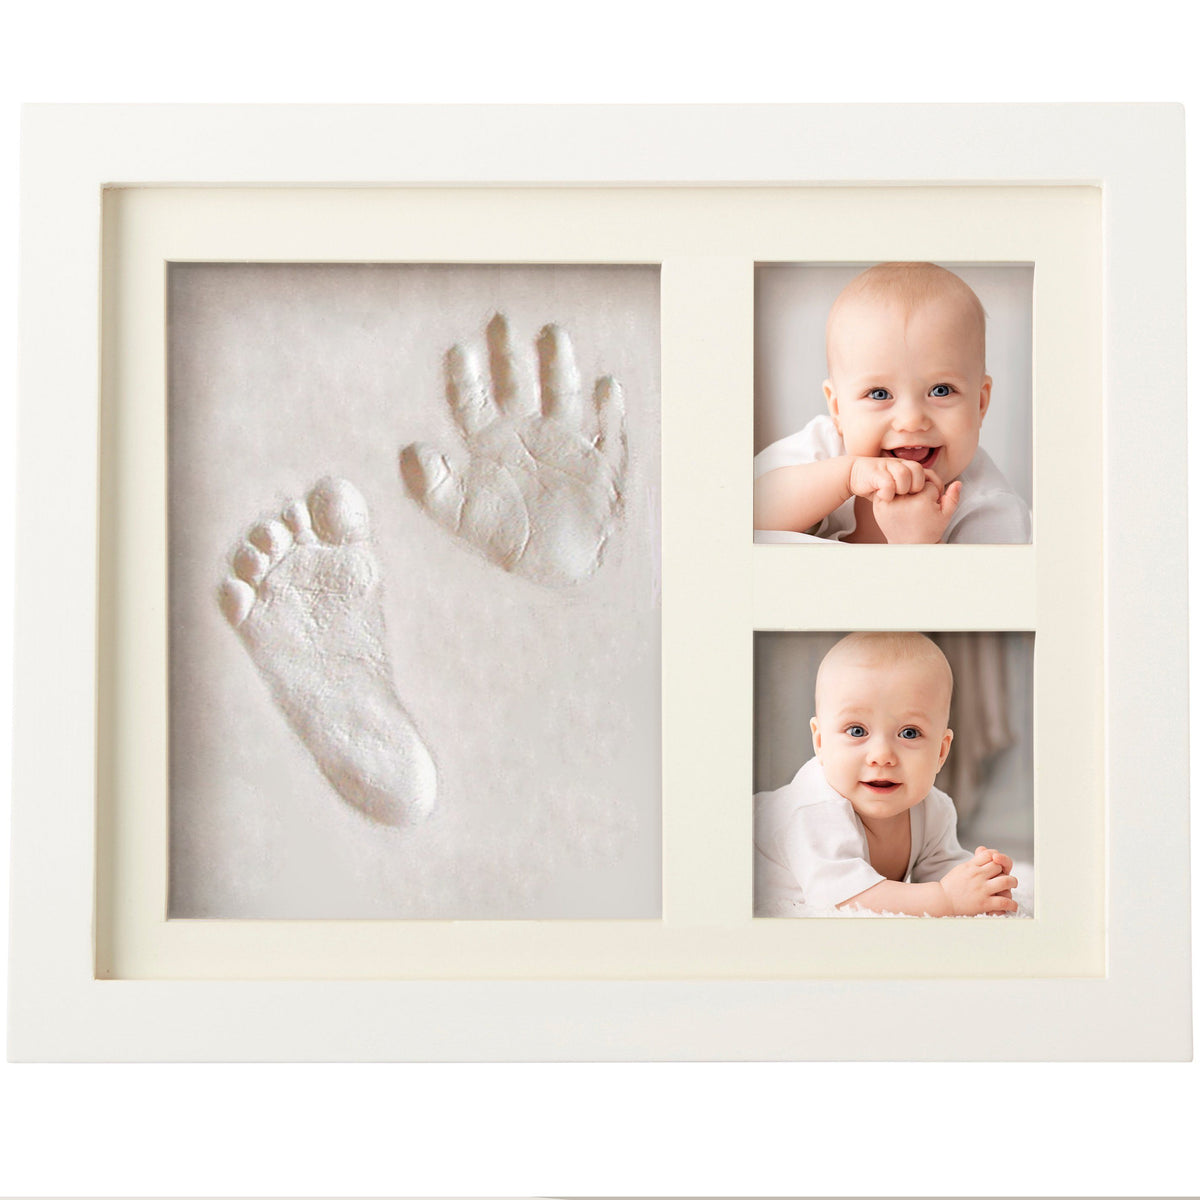 Bubzi Co Air-drying Handprint Kit & Footprint Photo Frame for Newborns Keepsake Bubzi Co